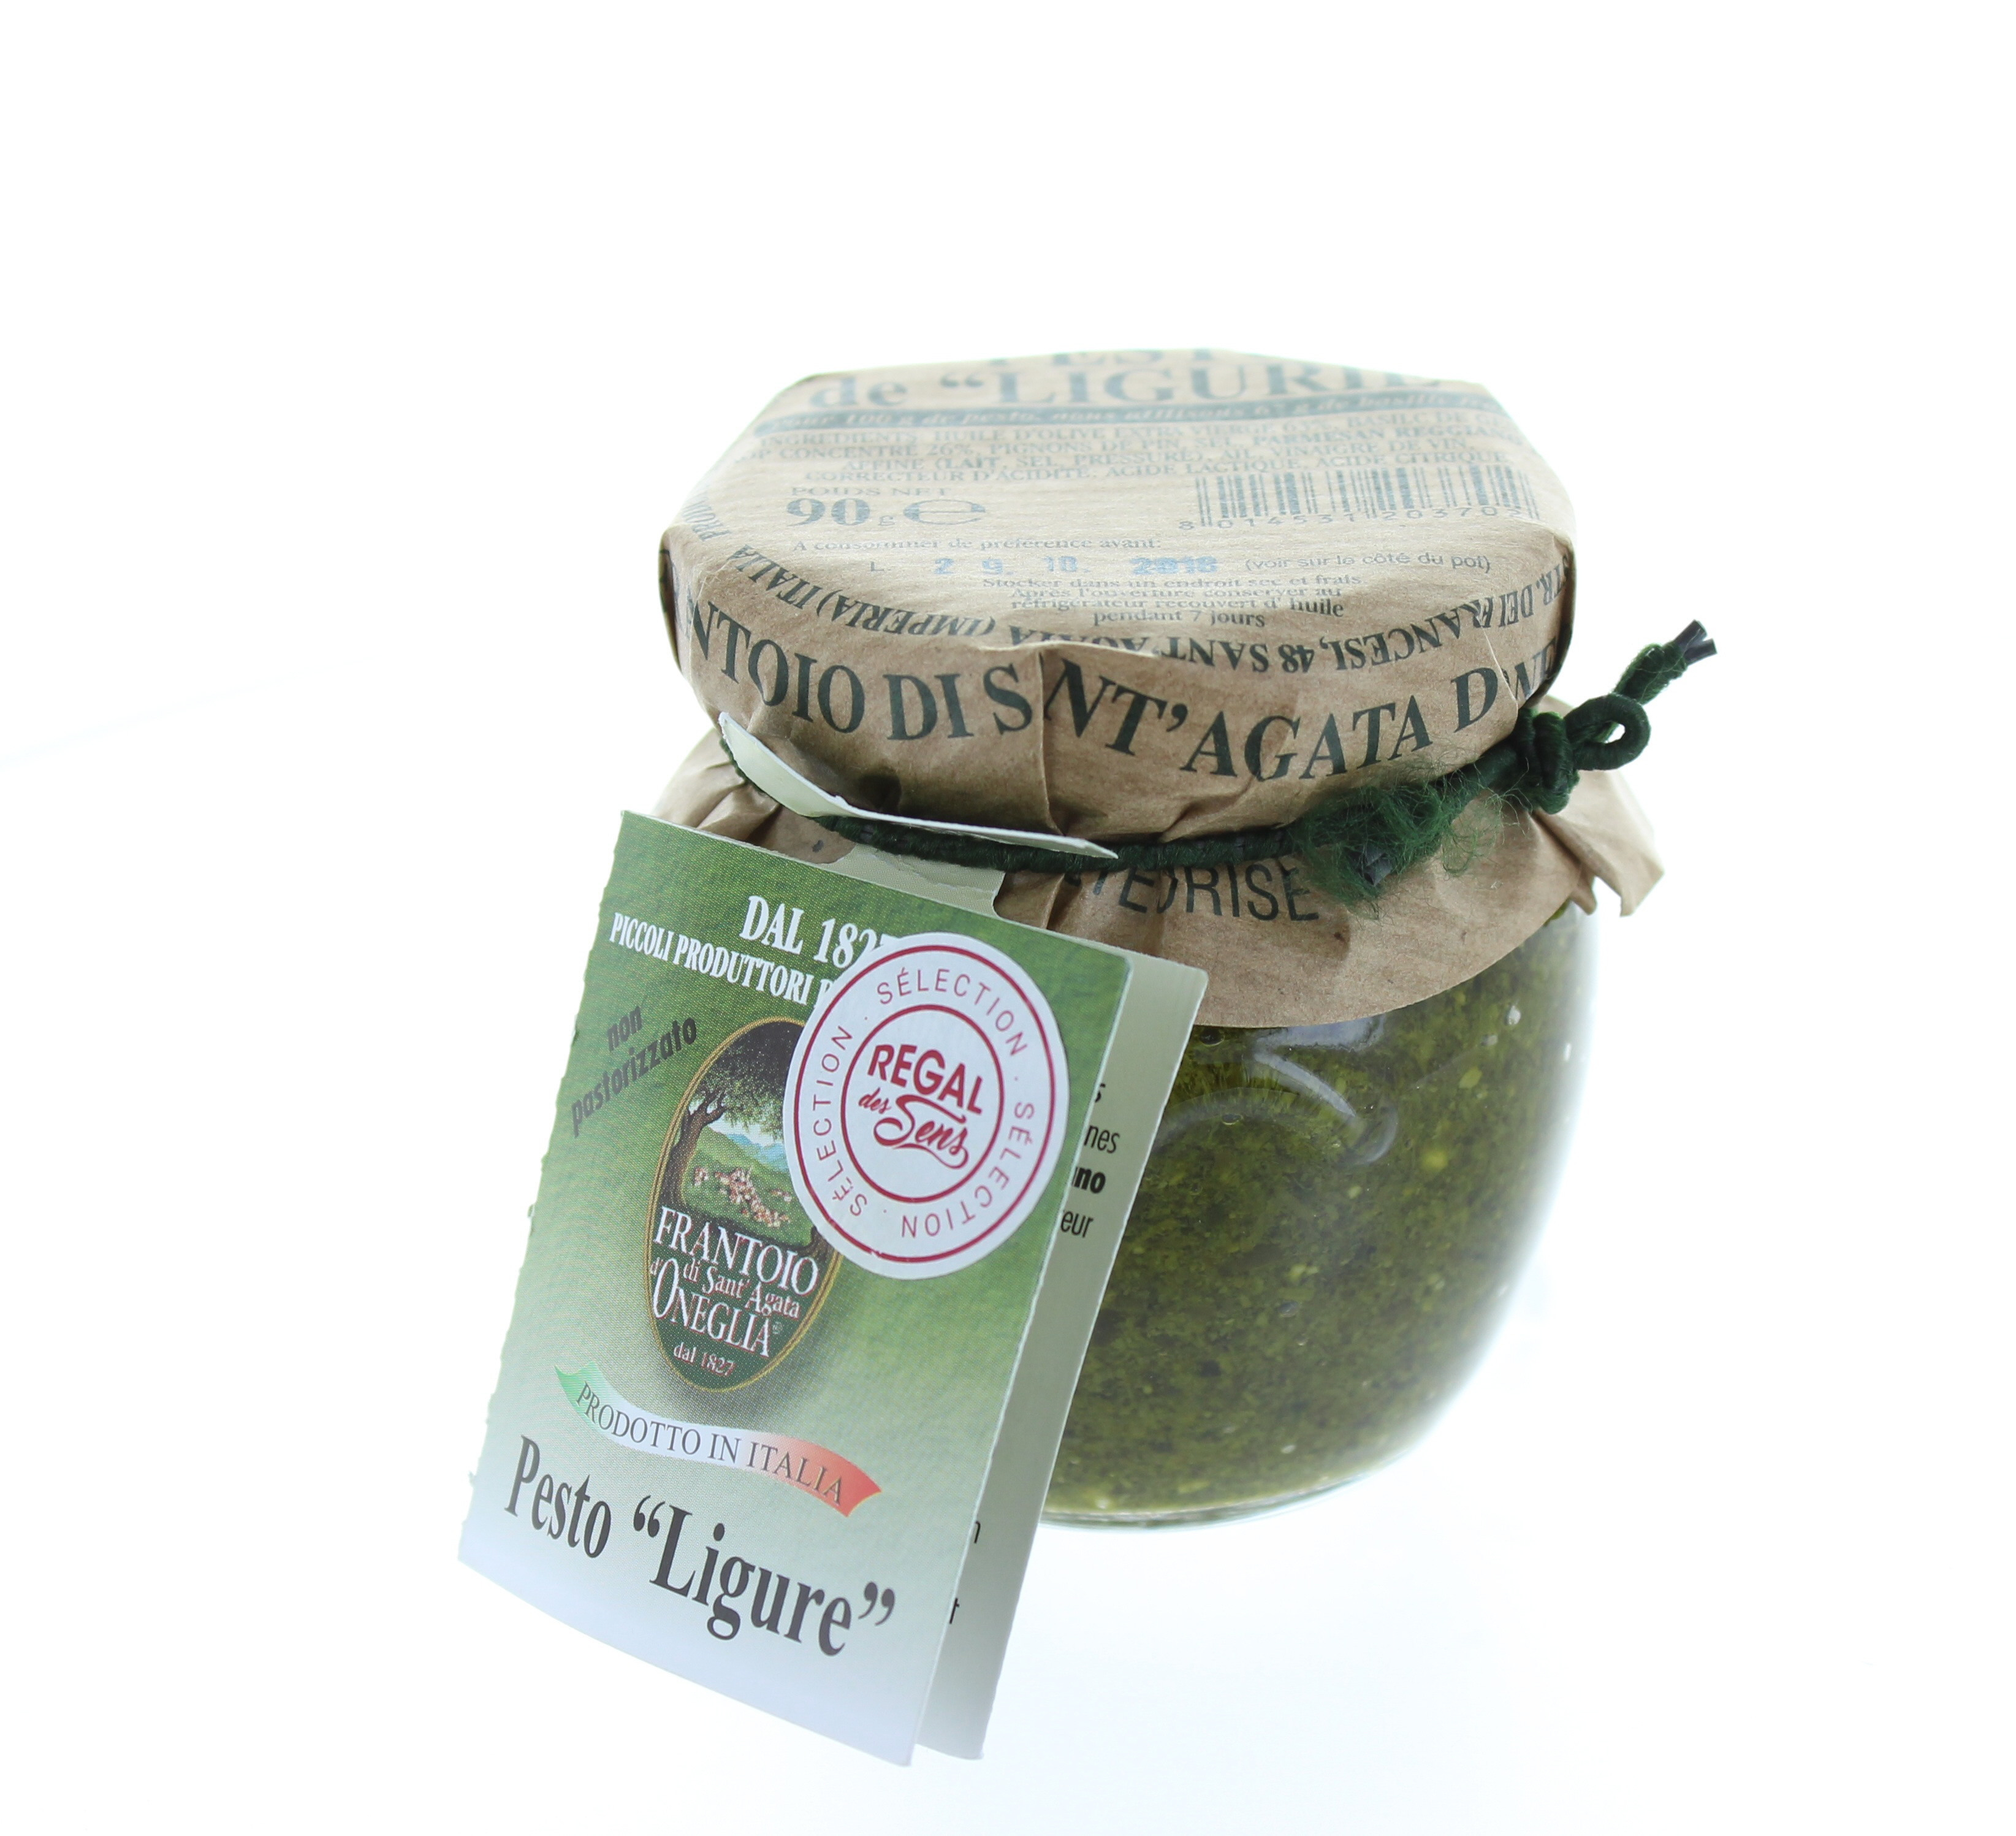 Pesto au basilic - Regal des Sens